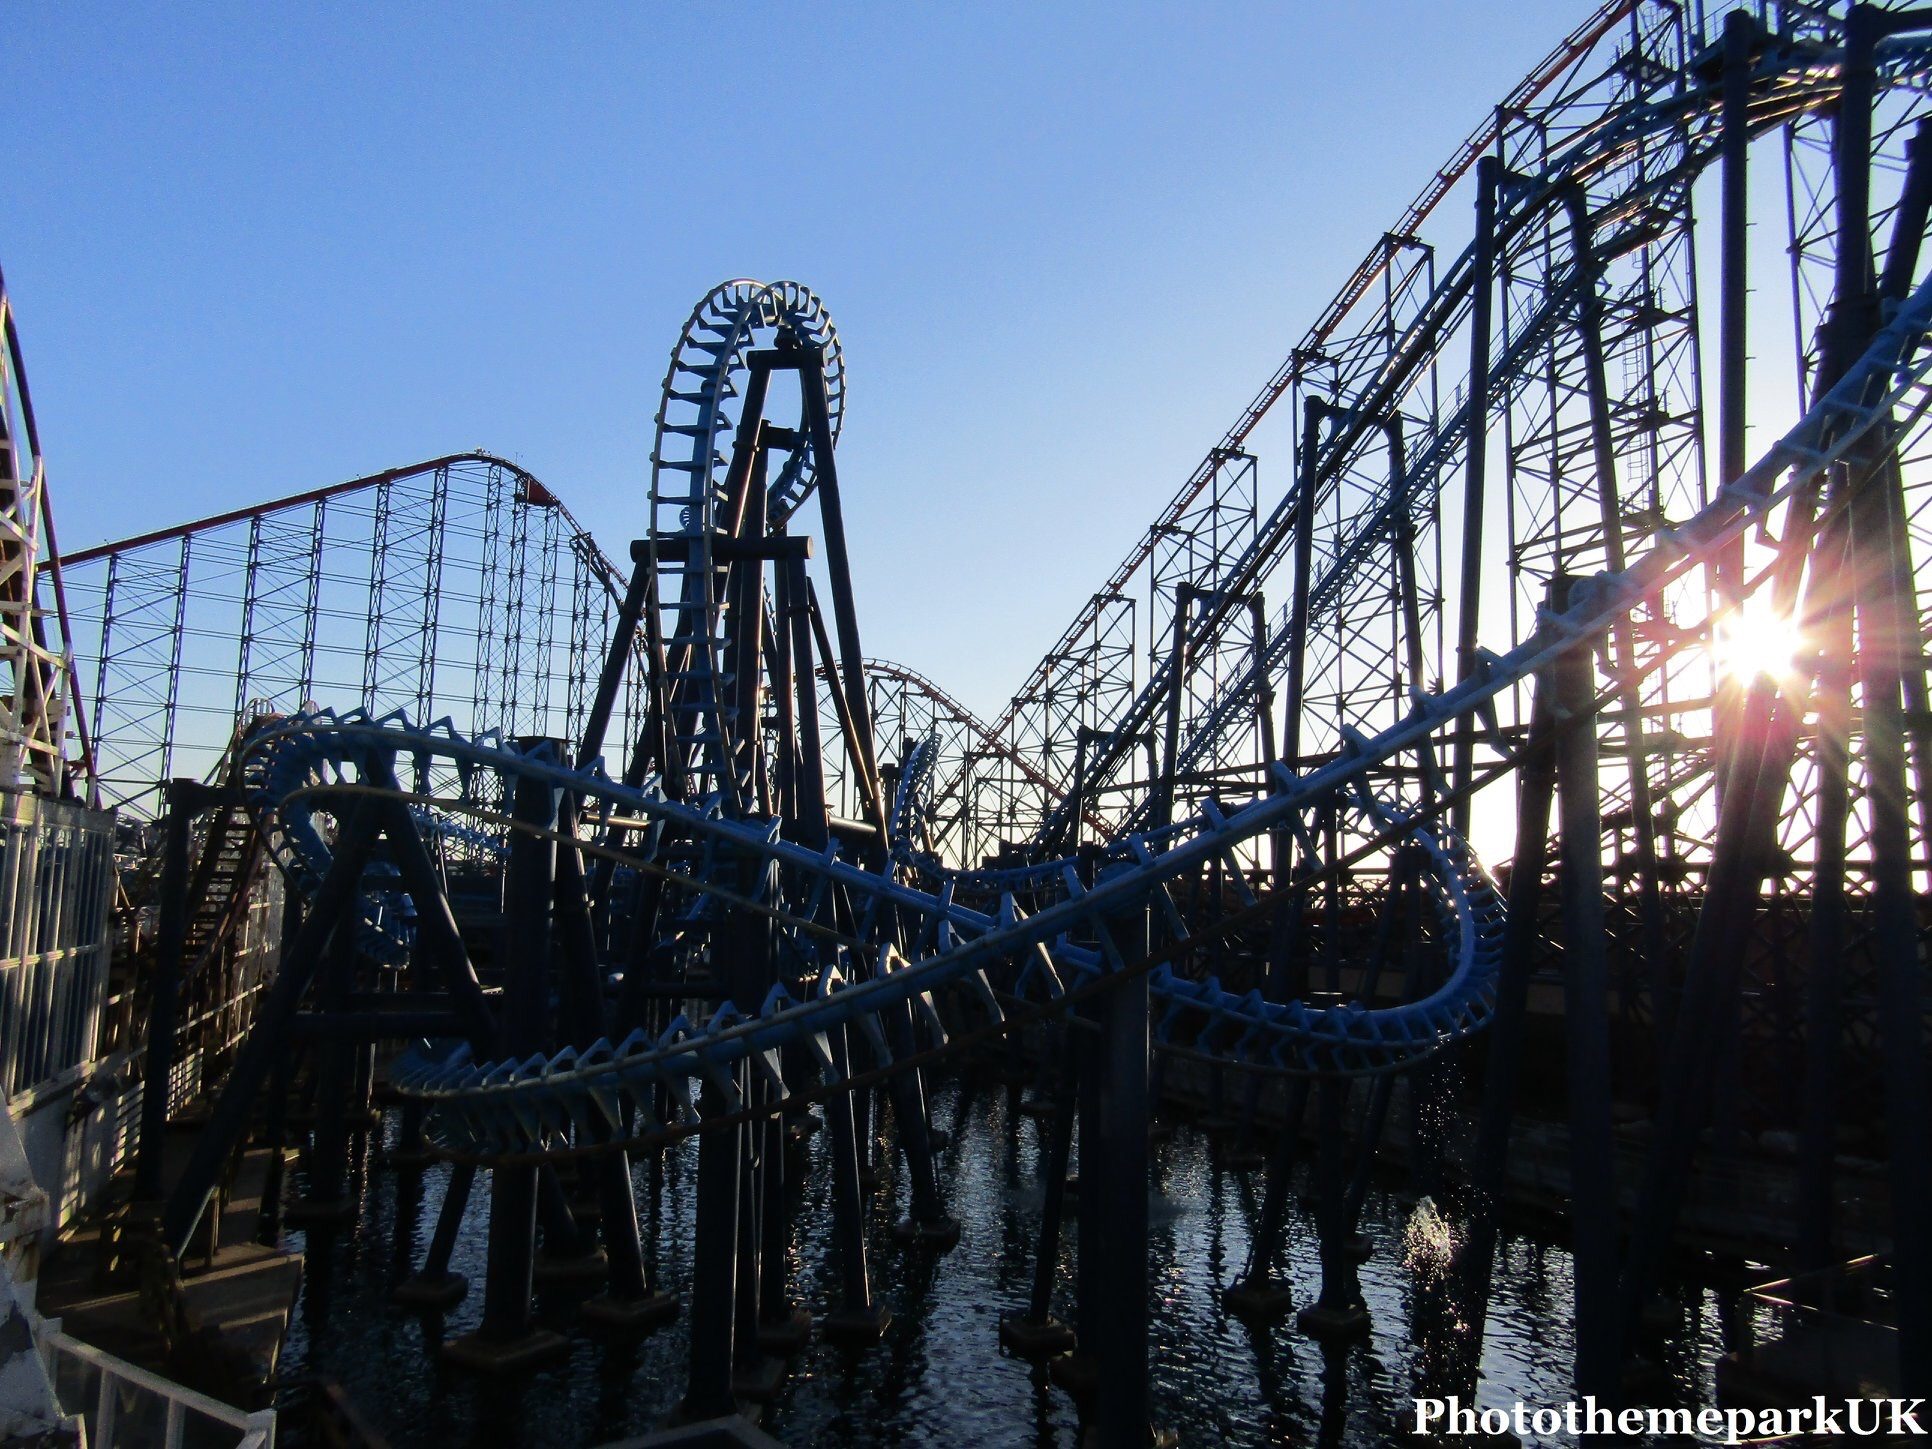 EVENT REVIEW: Late Night Riding & Fireworks: Blackpool Pleasure Beach